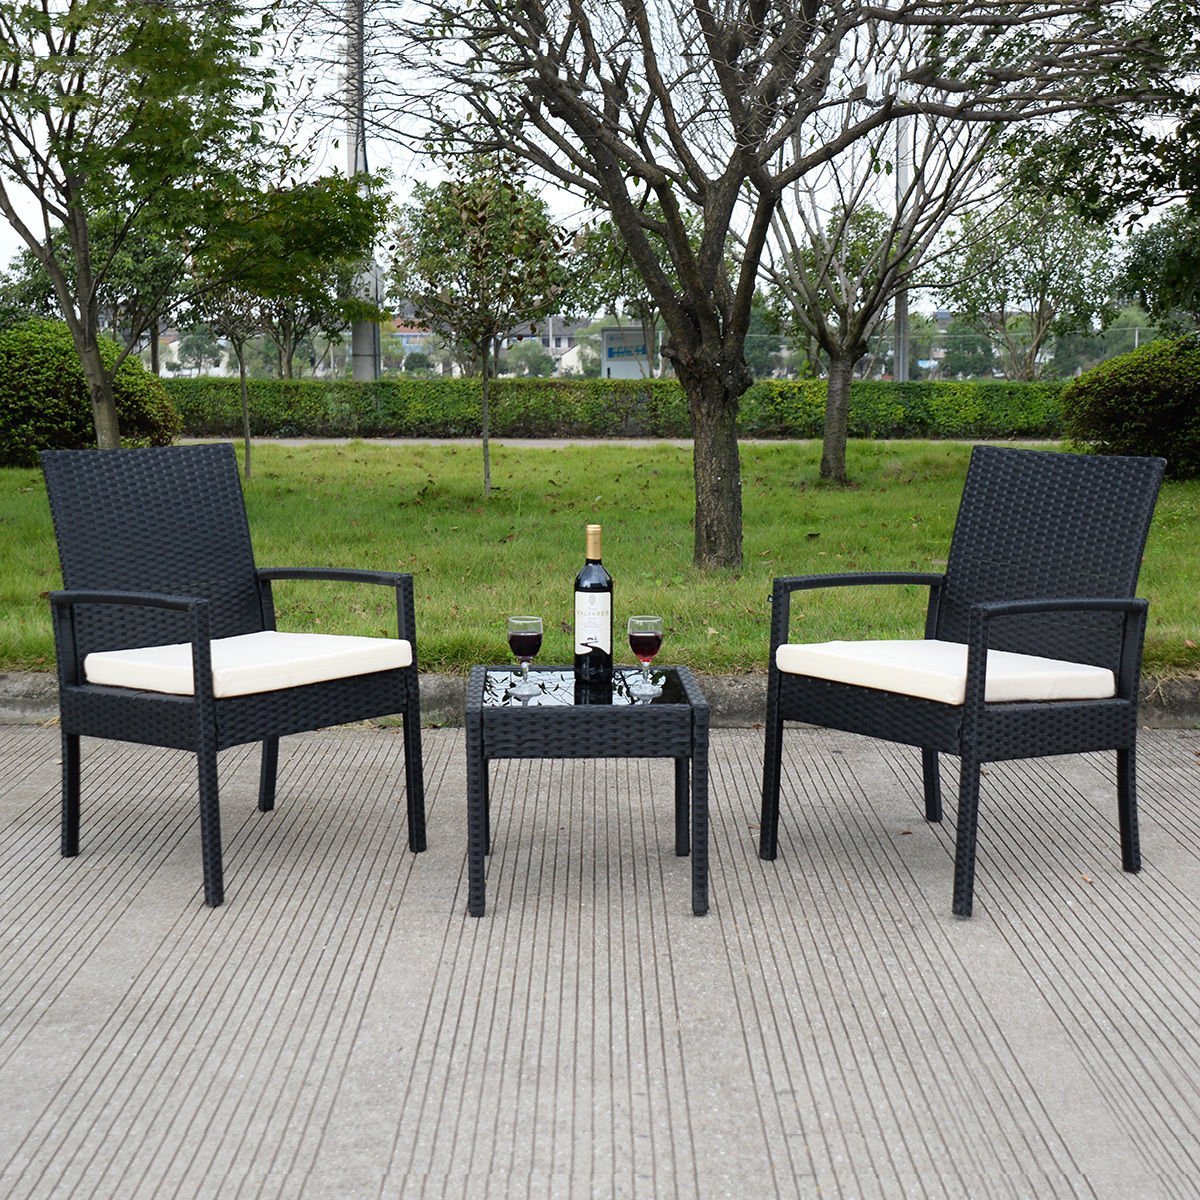 patio living outdoor coffee table wicker chair rattan furniture set seat outsunny garden